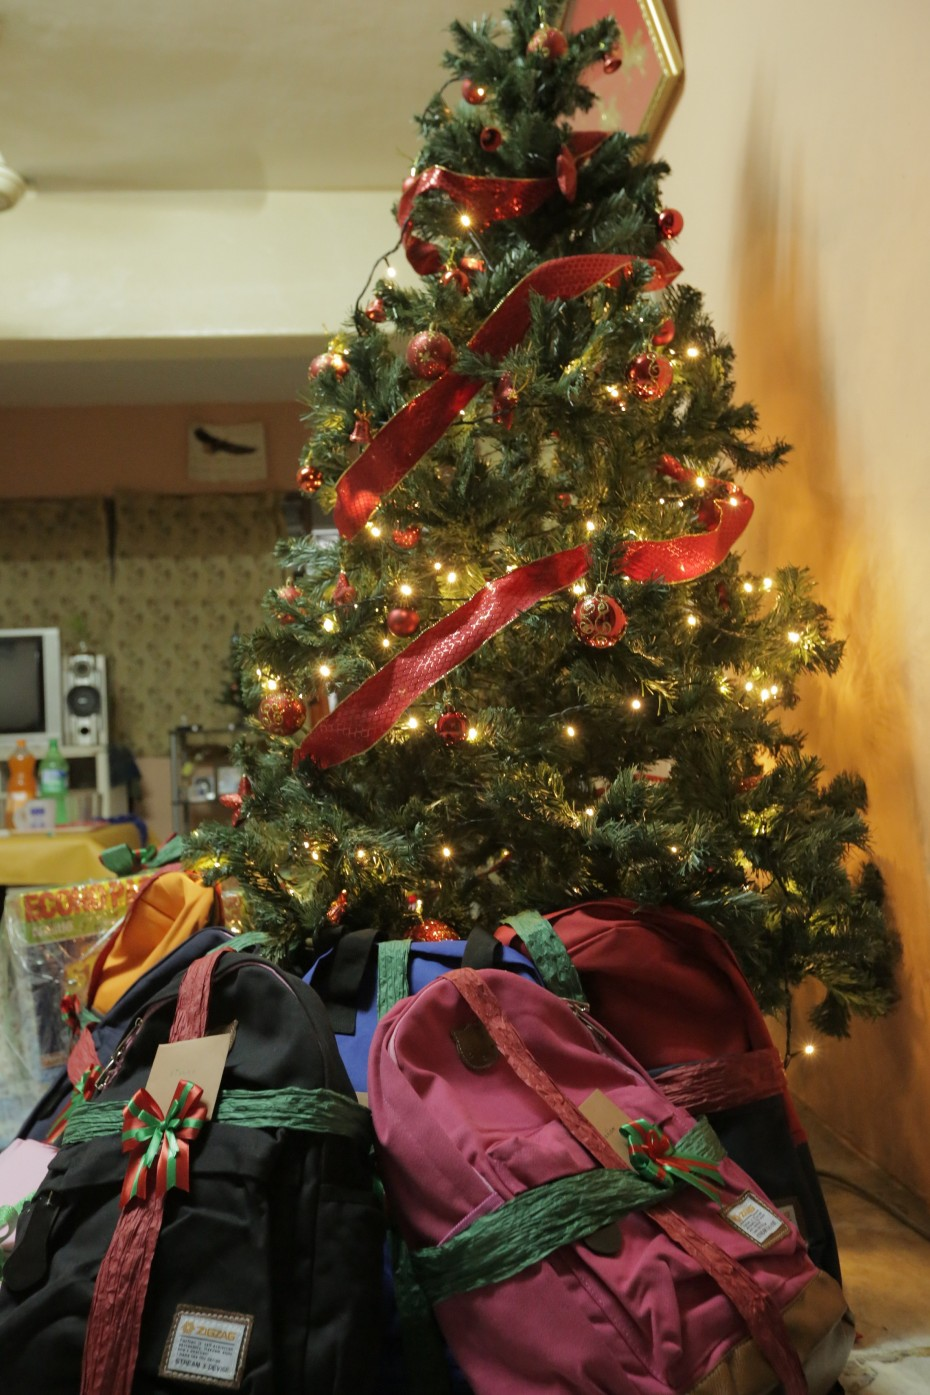 The Christmas tree and presents that R.AGE placed at Shabaz's house while he and the other families were away. ― Photo: ELROI YEE/The Star